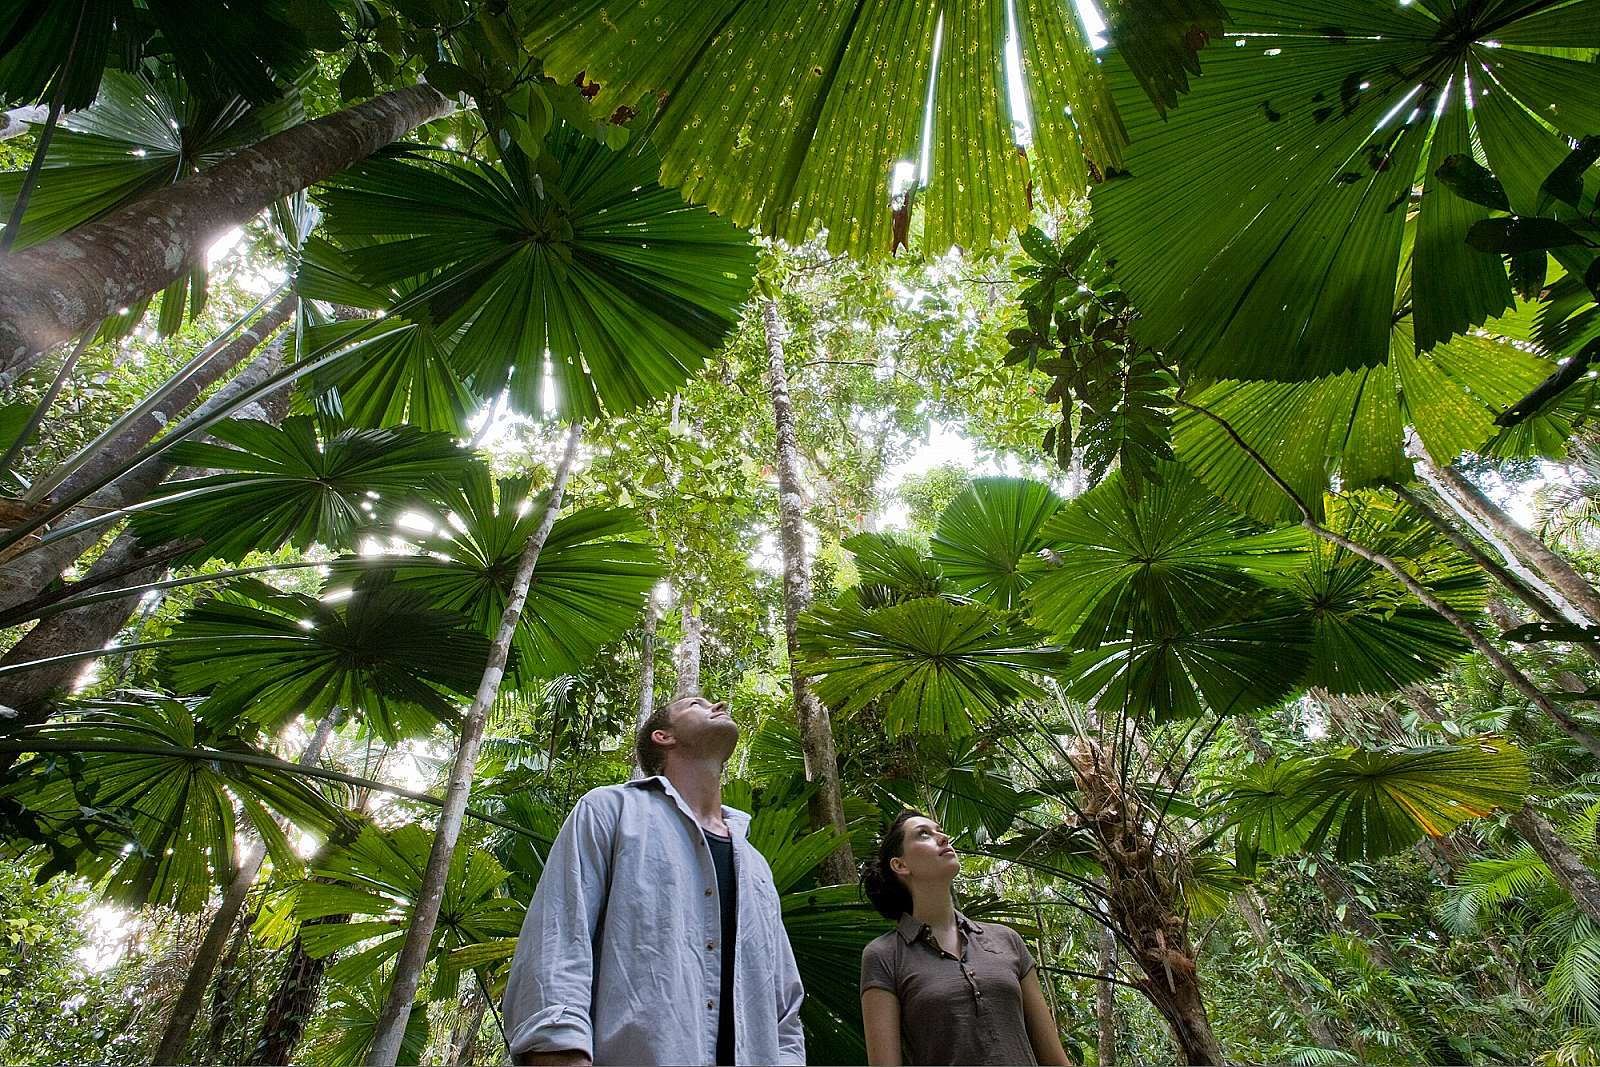 Image for Discovery Tours Australia - 1 Day Daintree & Cape Trib Rainforest Experience ex Cairns & Northern Beaches